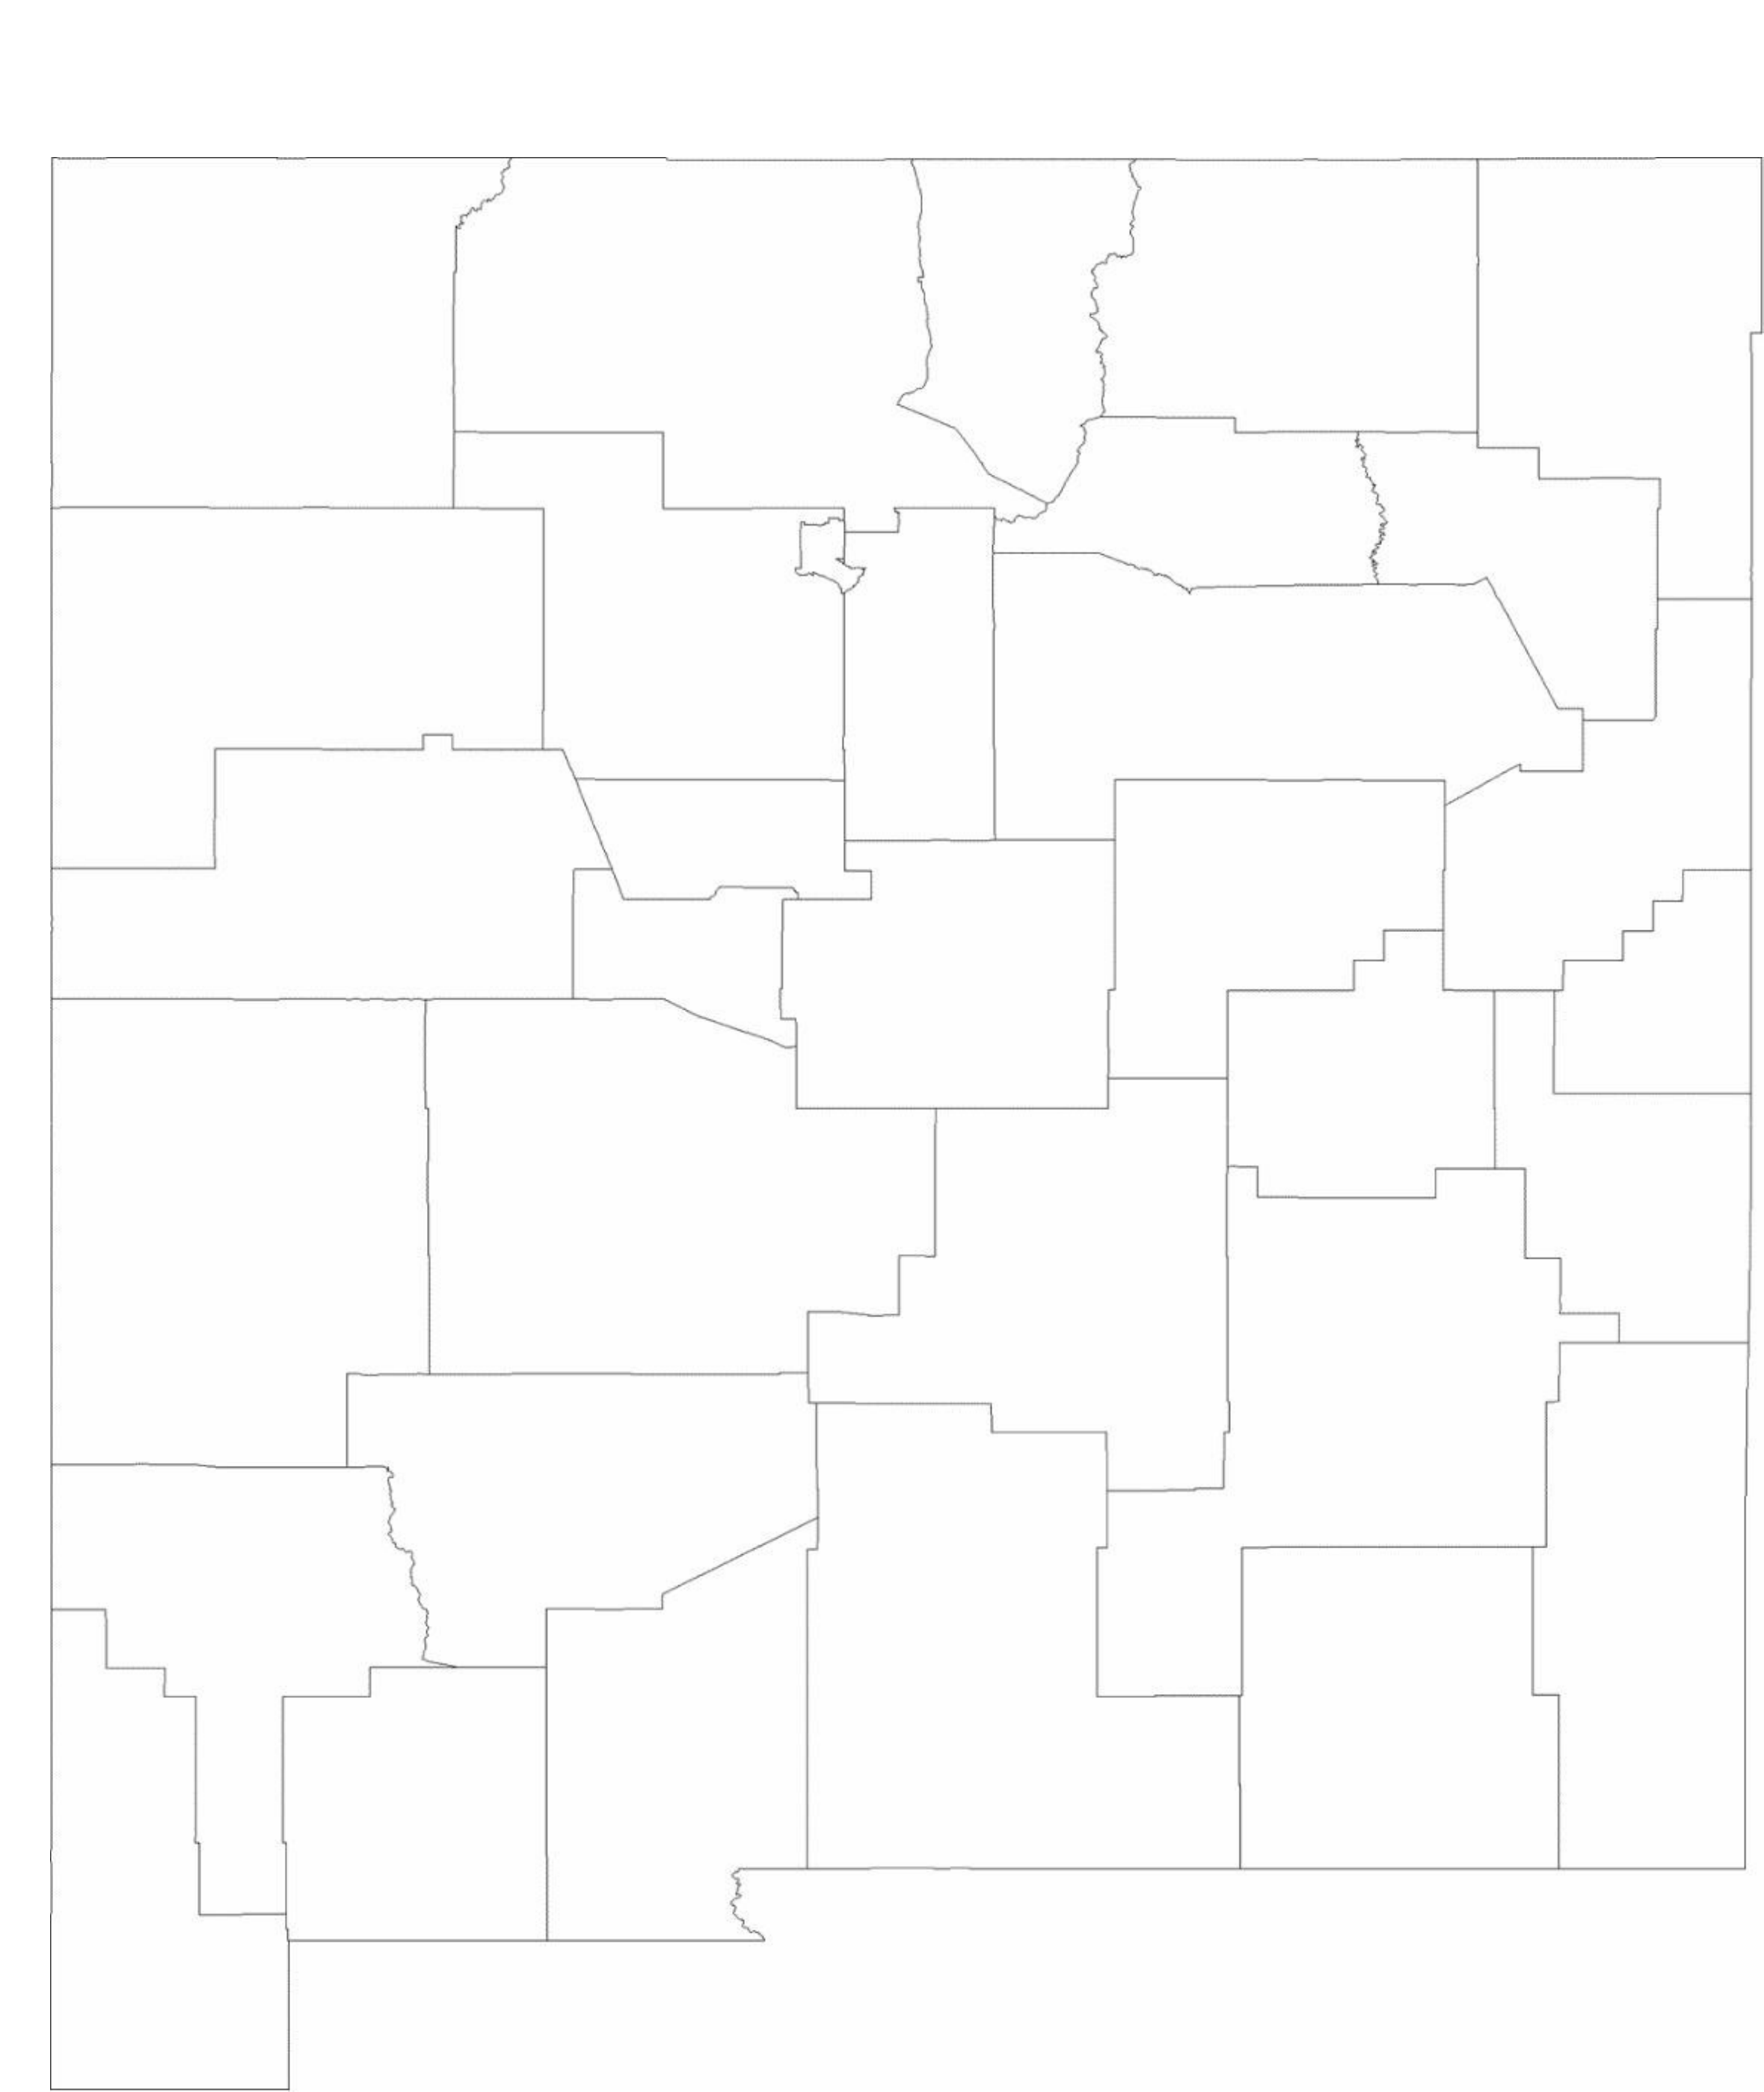 Blank New Mexico County Map Free Download